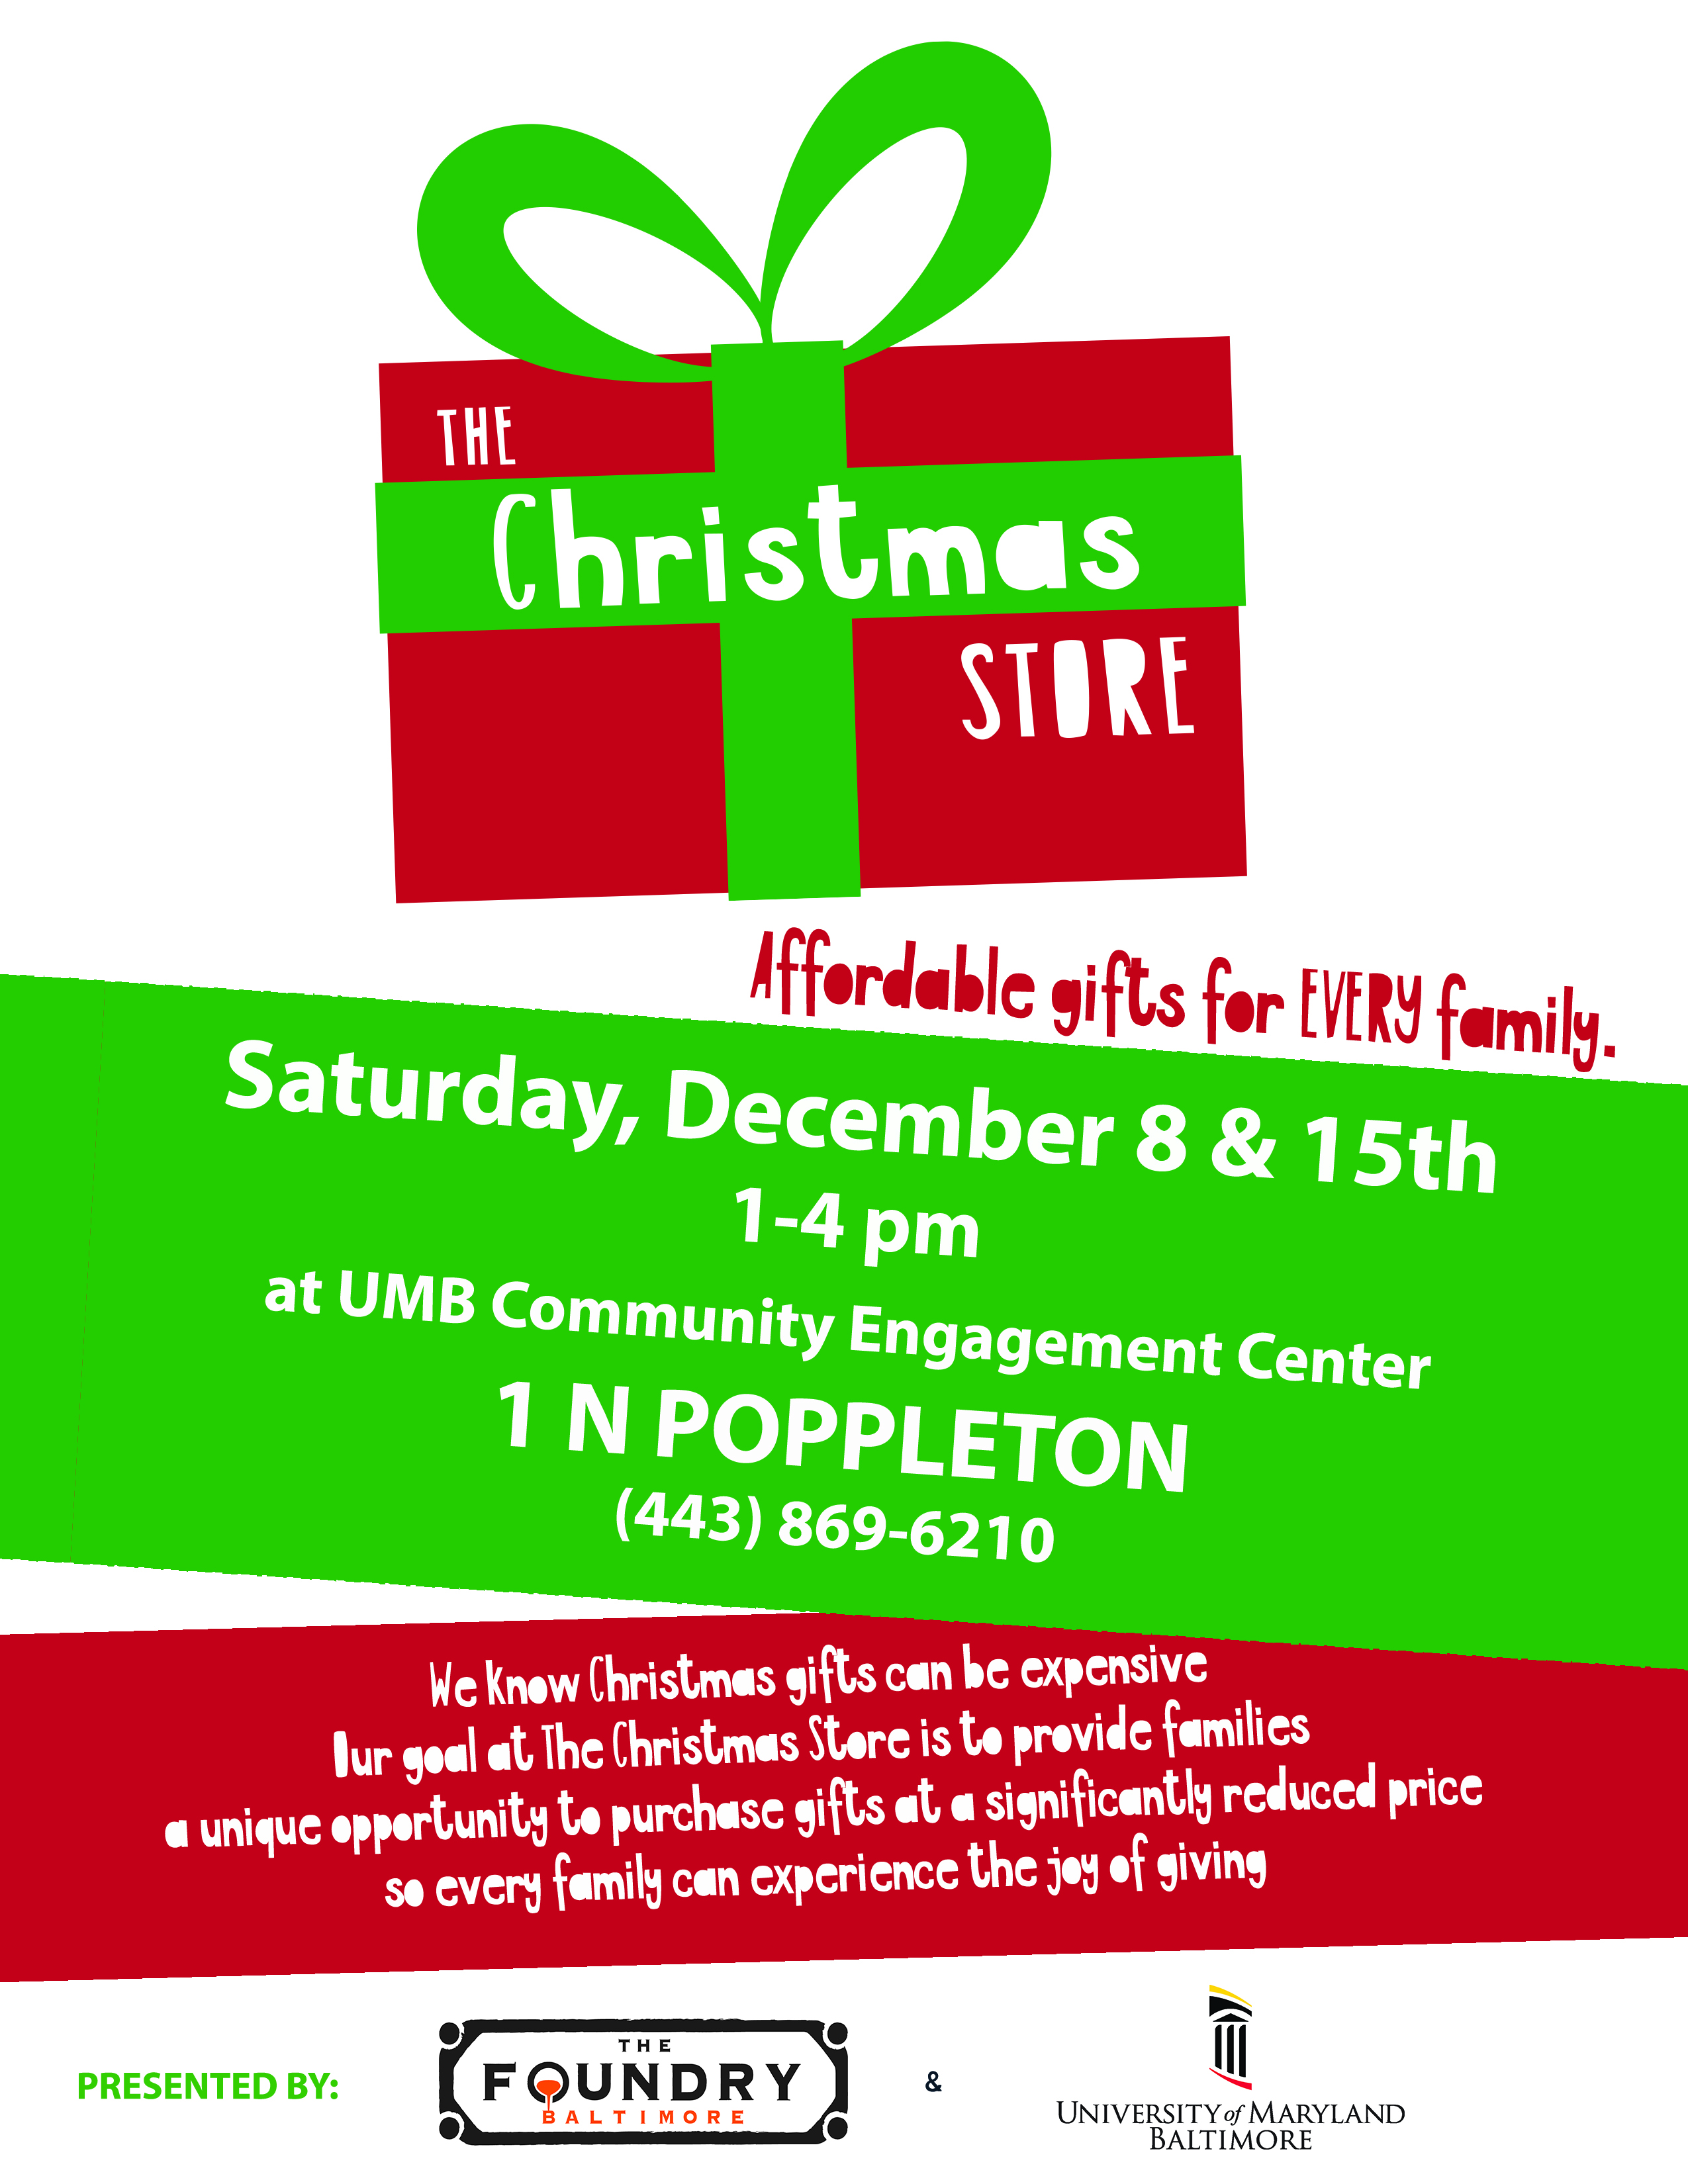 The Christmas Store – UM Partnership With West Baltimore